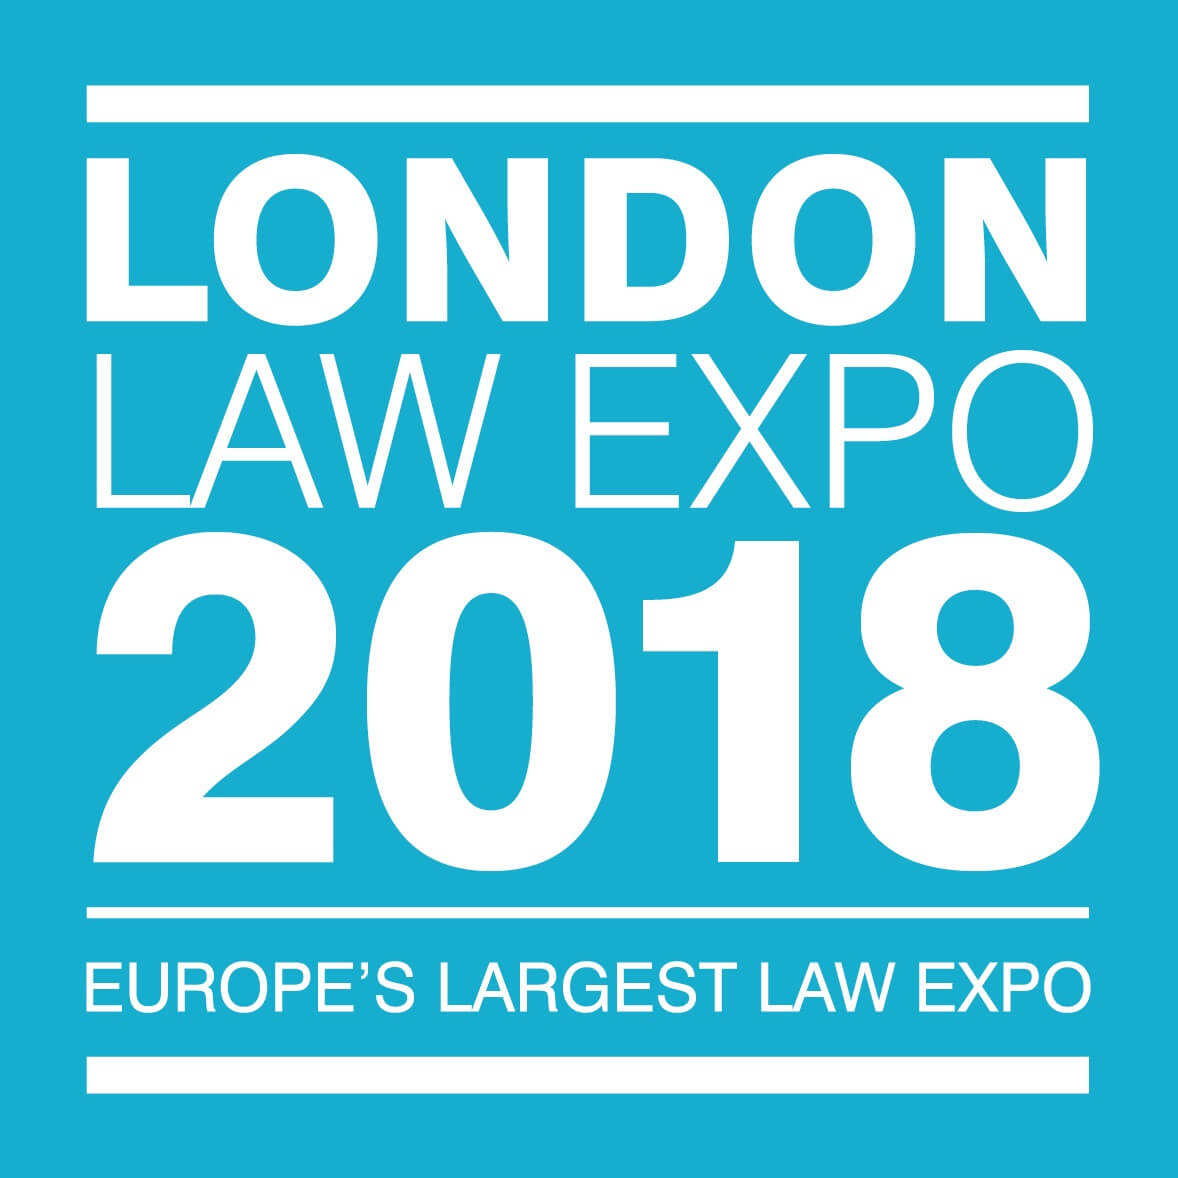 Bundledocs - LLE2018 - London Law Expo - Legal Technology event by Netlaw Media.jpg